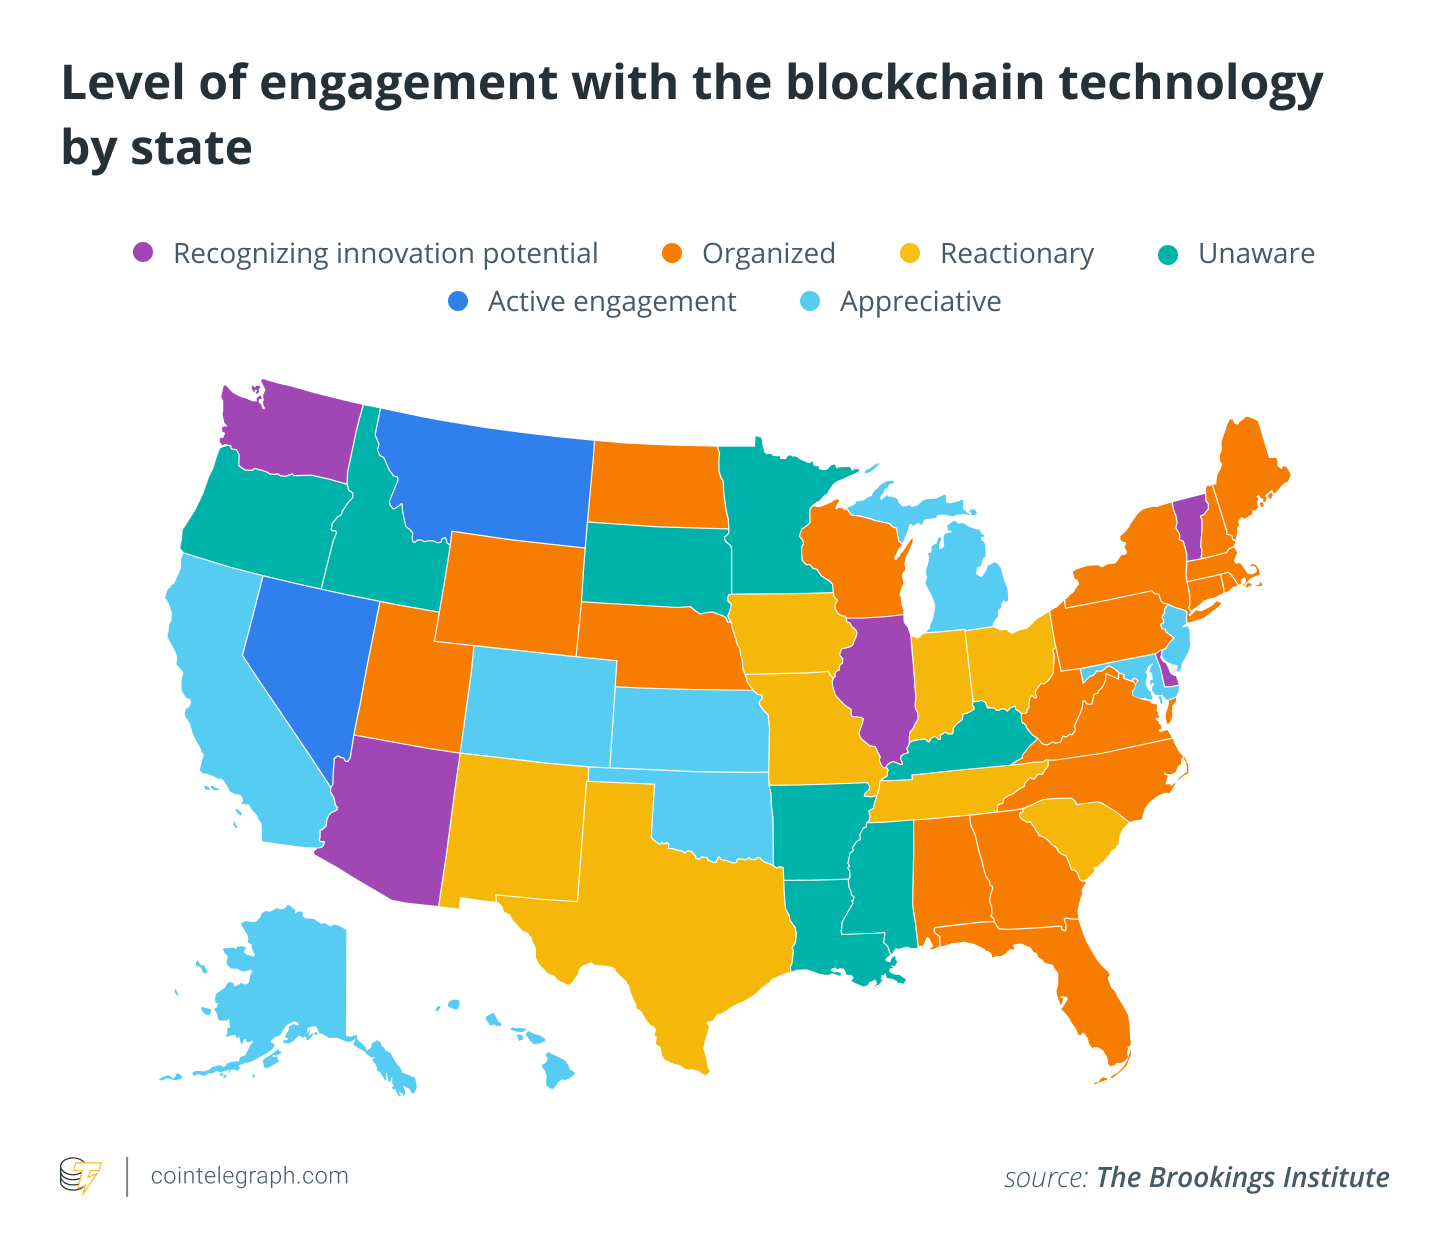 Level of engagement with the blockchain technology by state